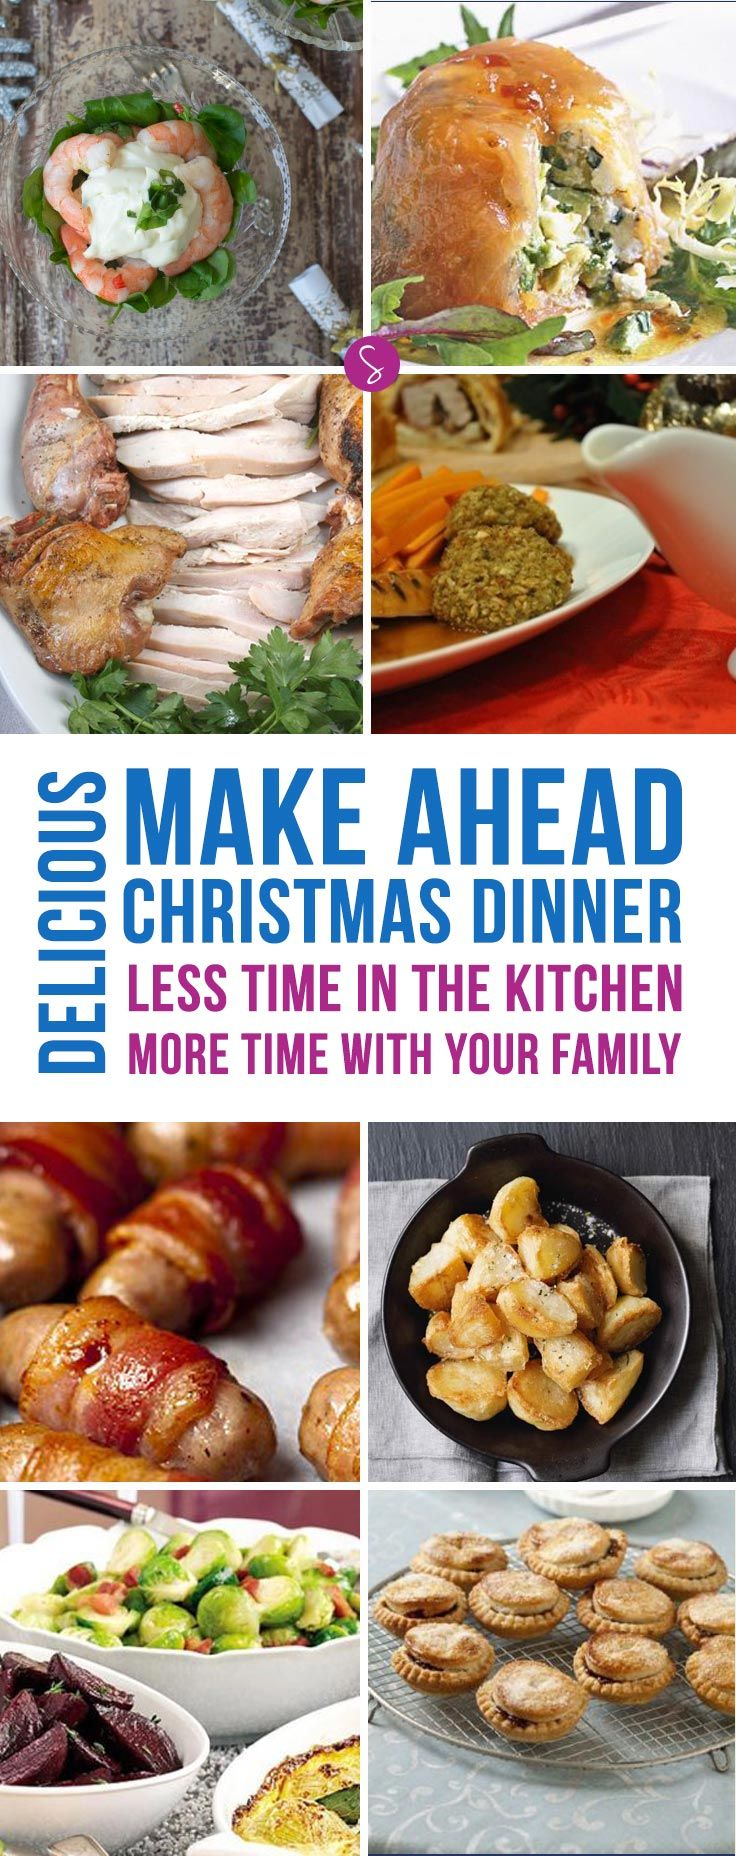 love the idea of being able to make ahead my christmas dinner so im - Make Ahead Christmas Dinner Recipes